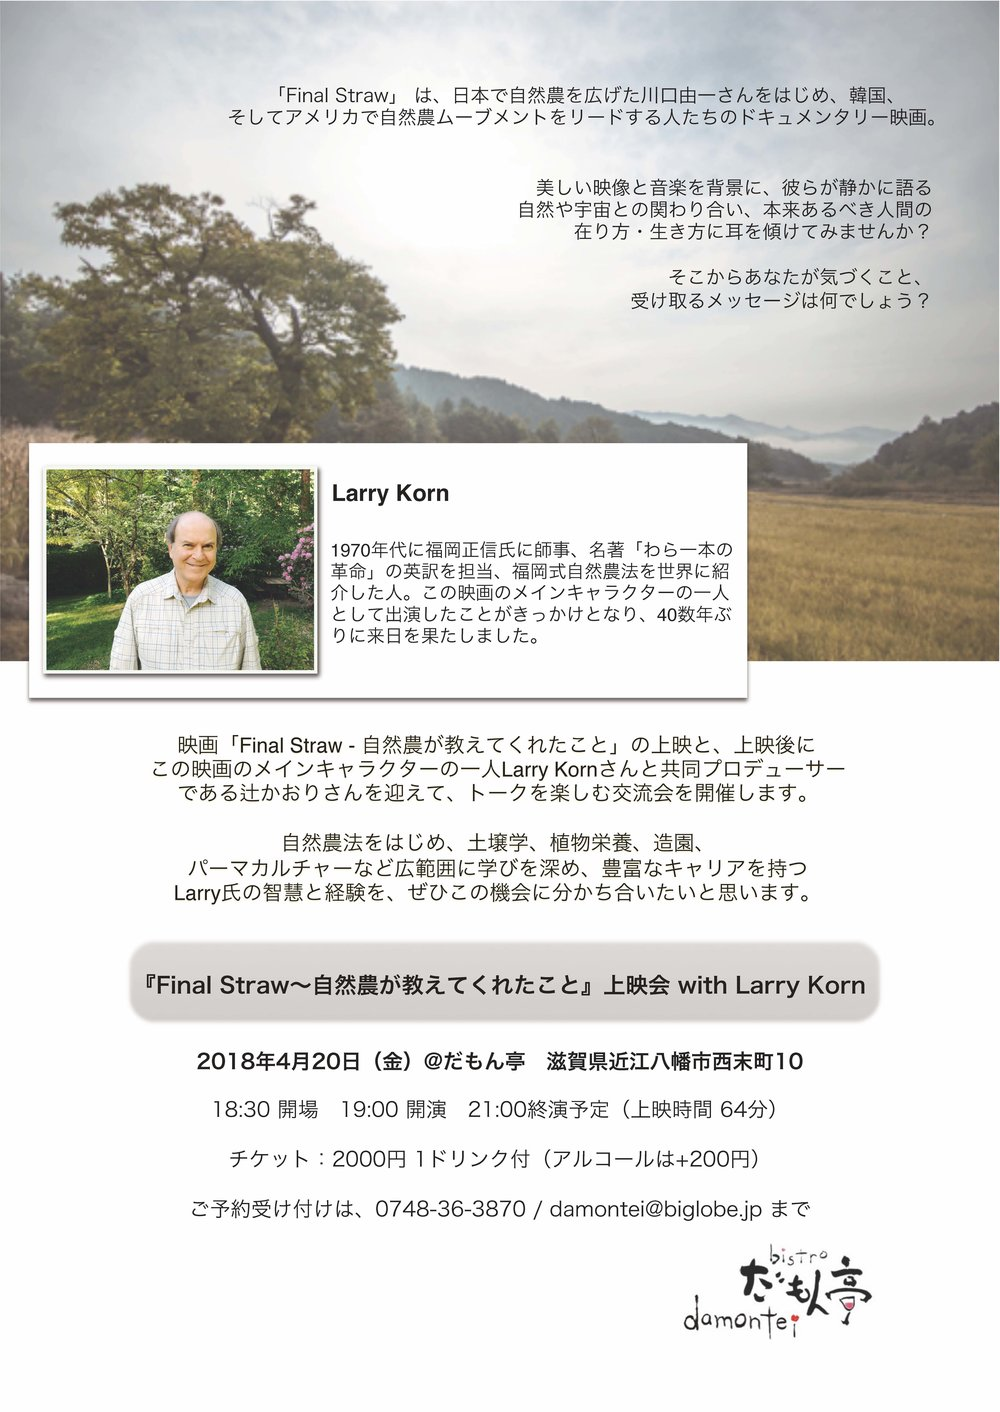 larry korn event flyer for printing_Page_2.jpg